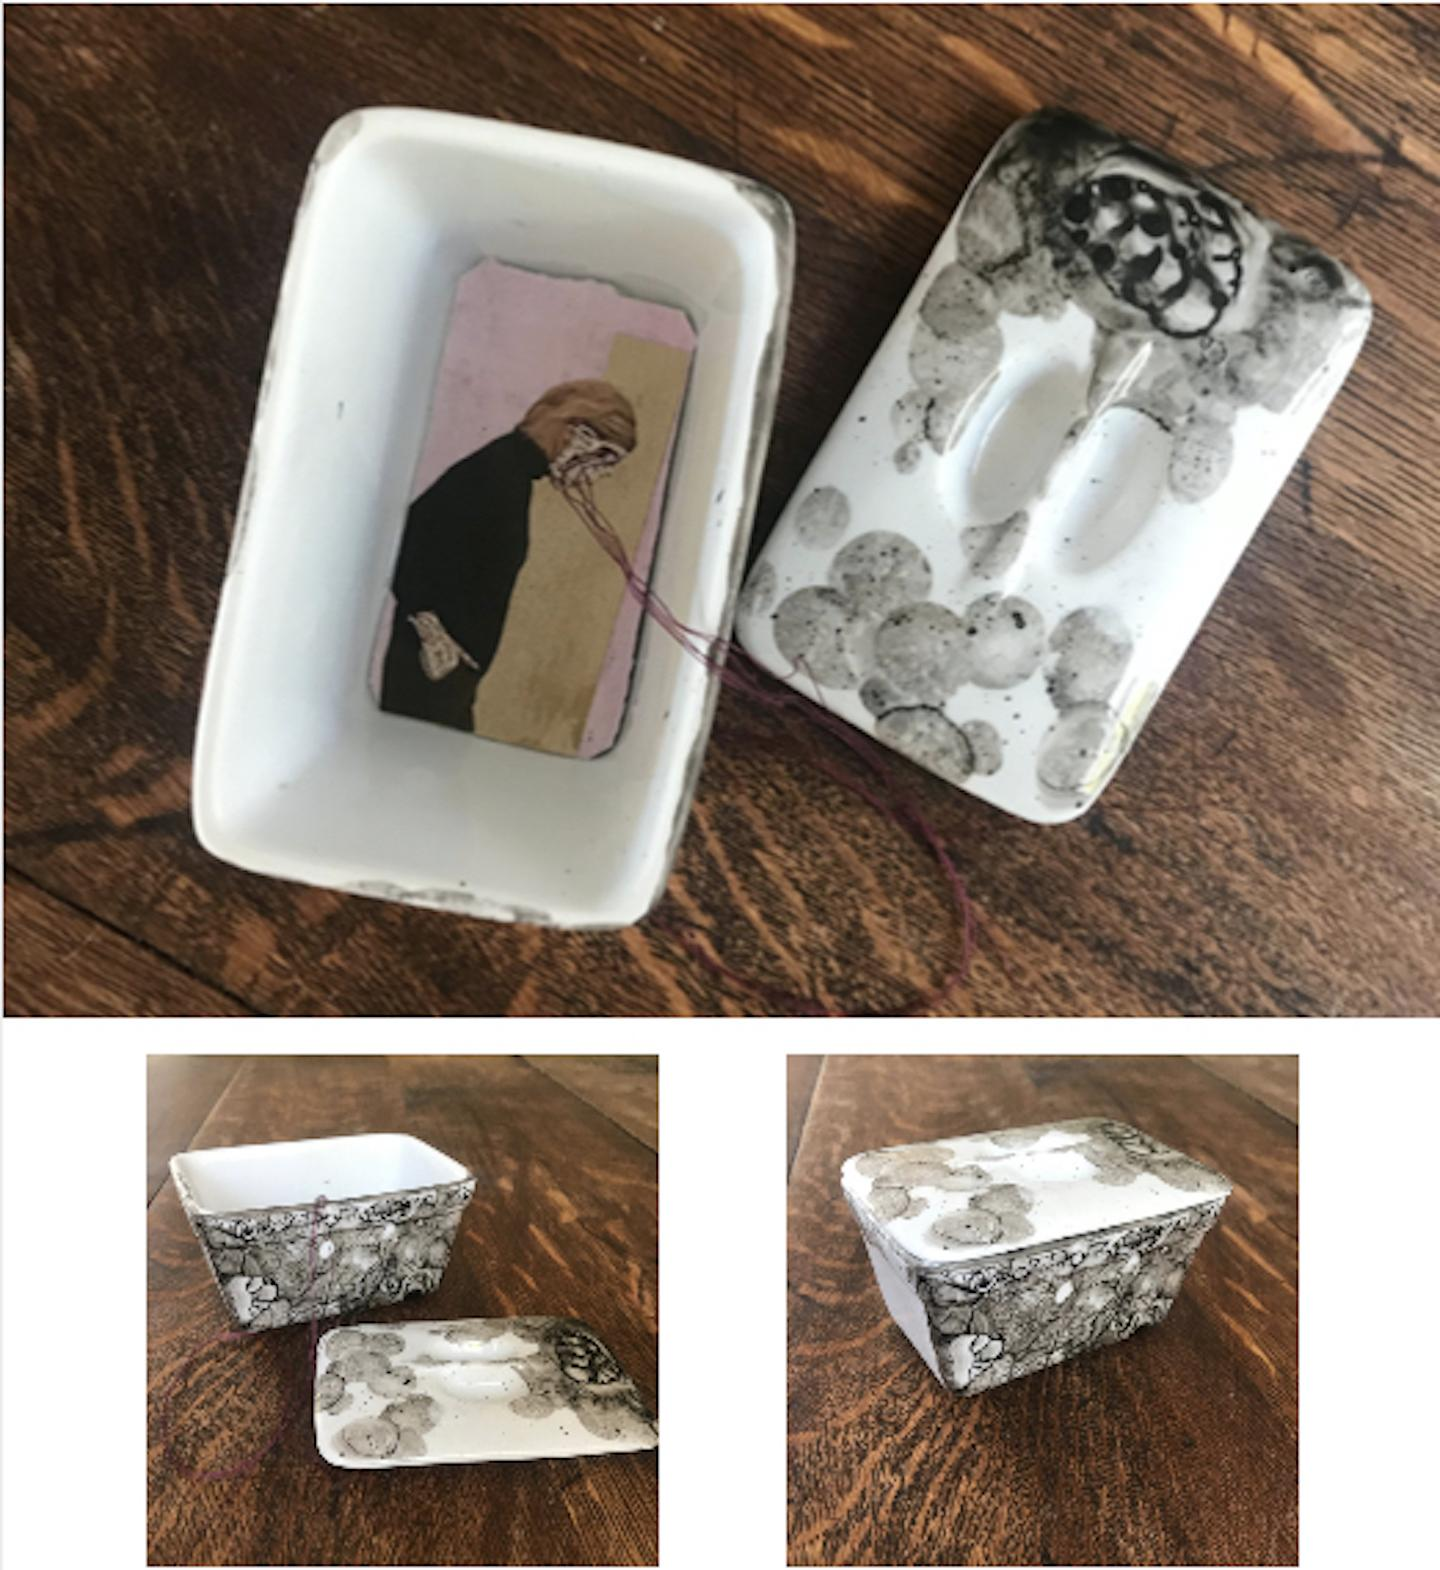 Terrine 3- embroidered photo transfer of women on fabric in vintage ceramic